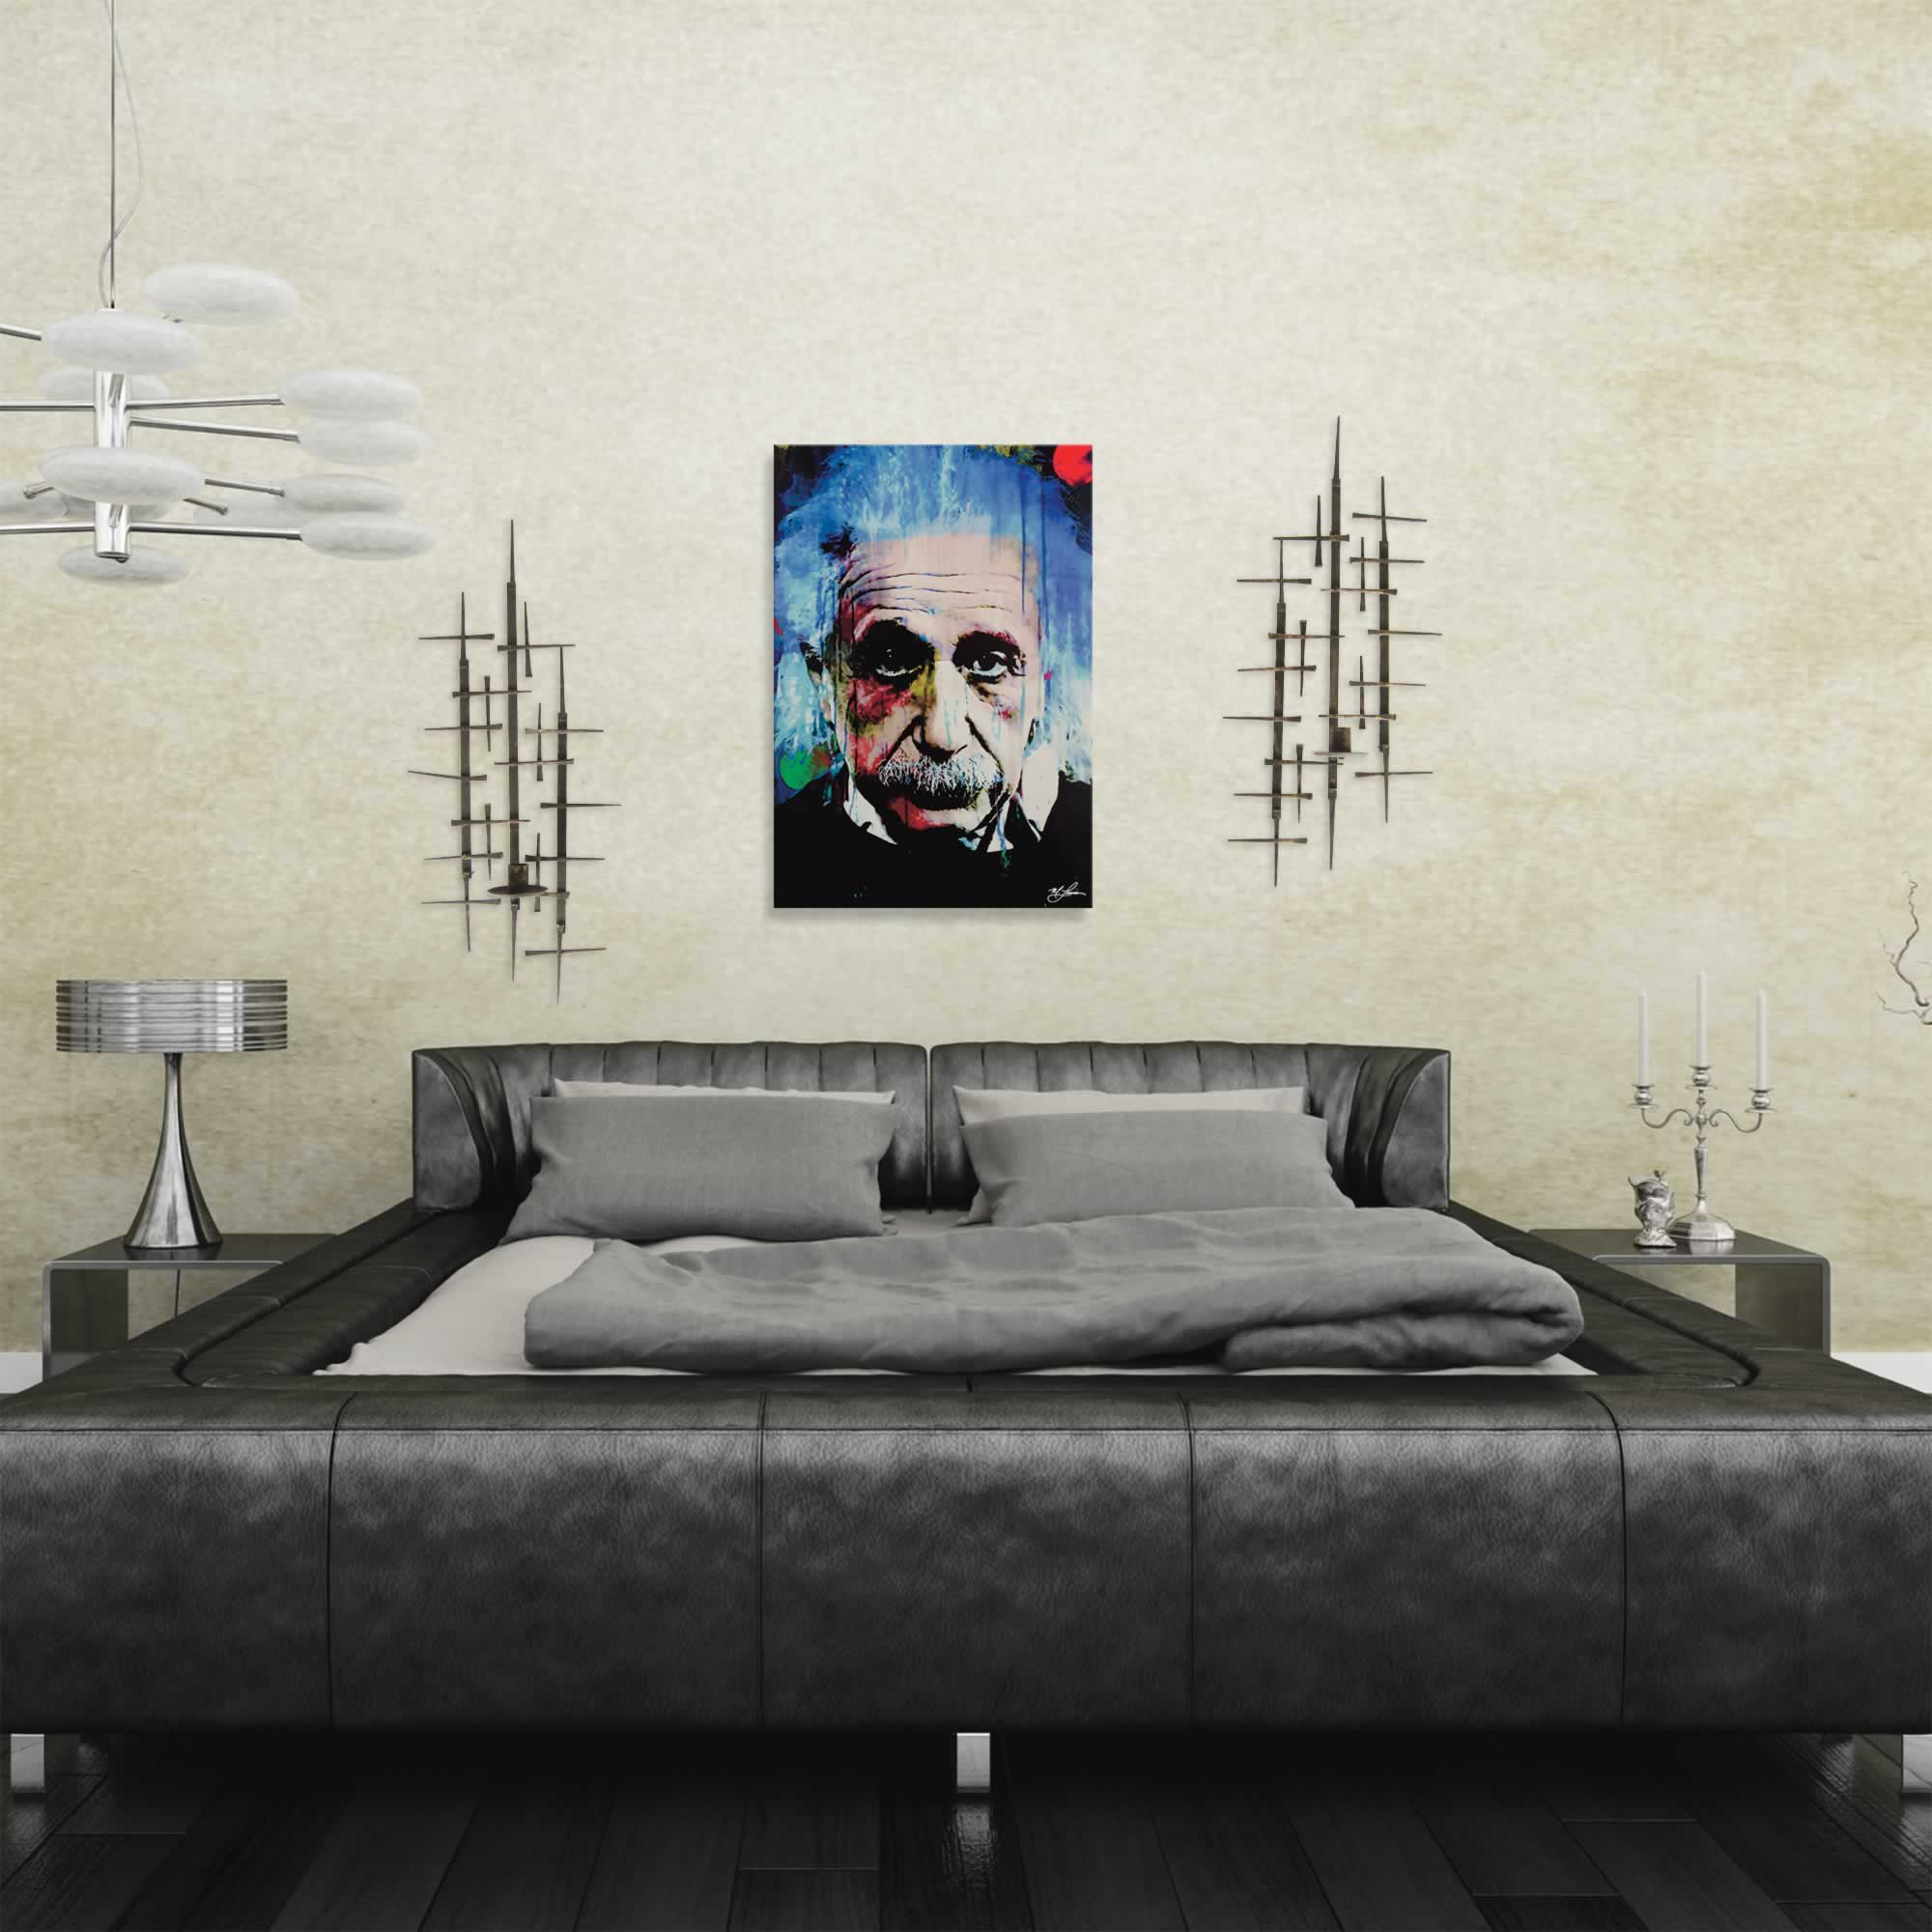 Albert Einstein Questioning Tomorrow | Pop Art Painting by Mark Lewis, Signed & Numbered Limited Edition - ML0006